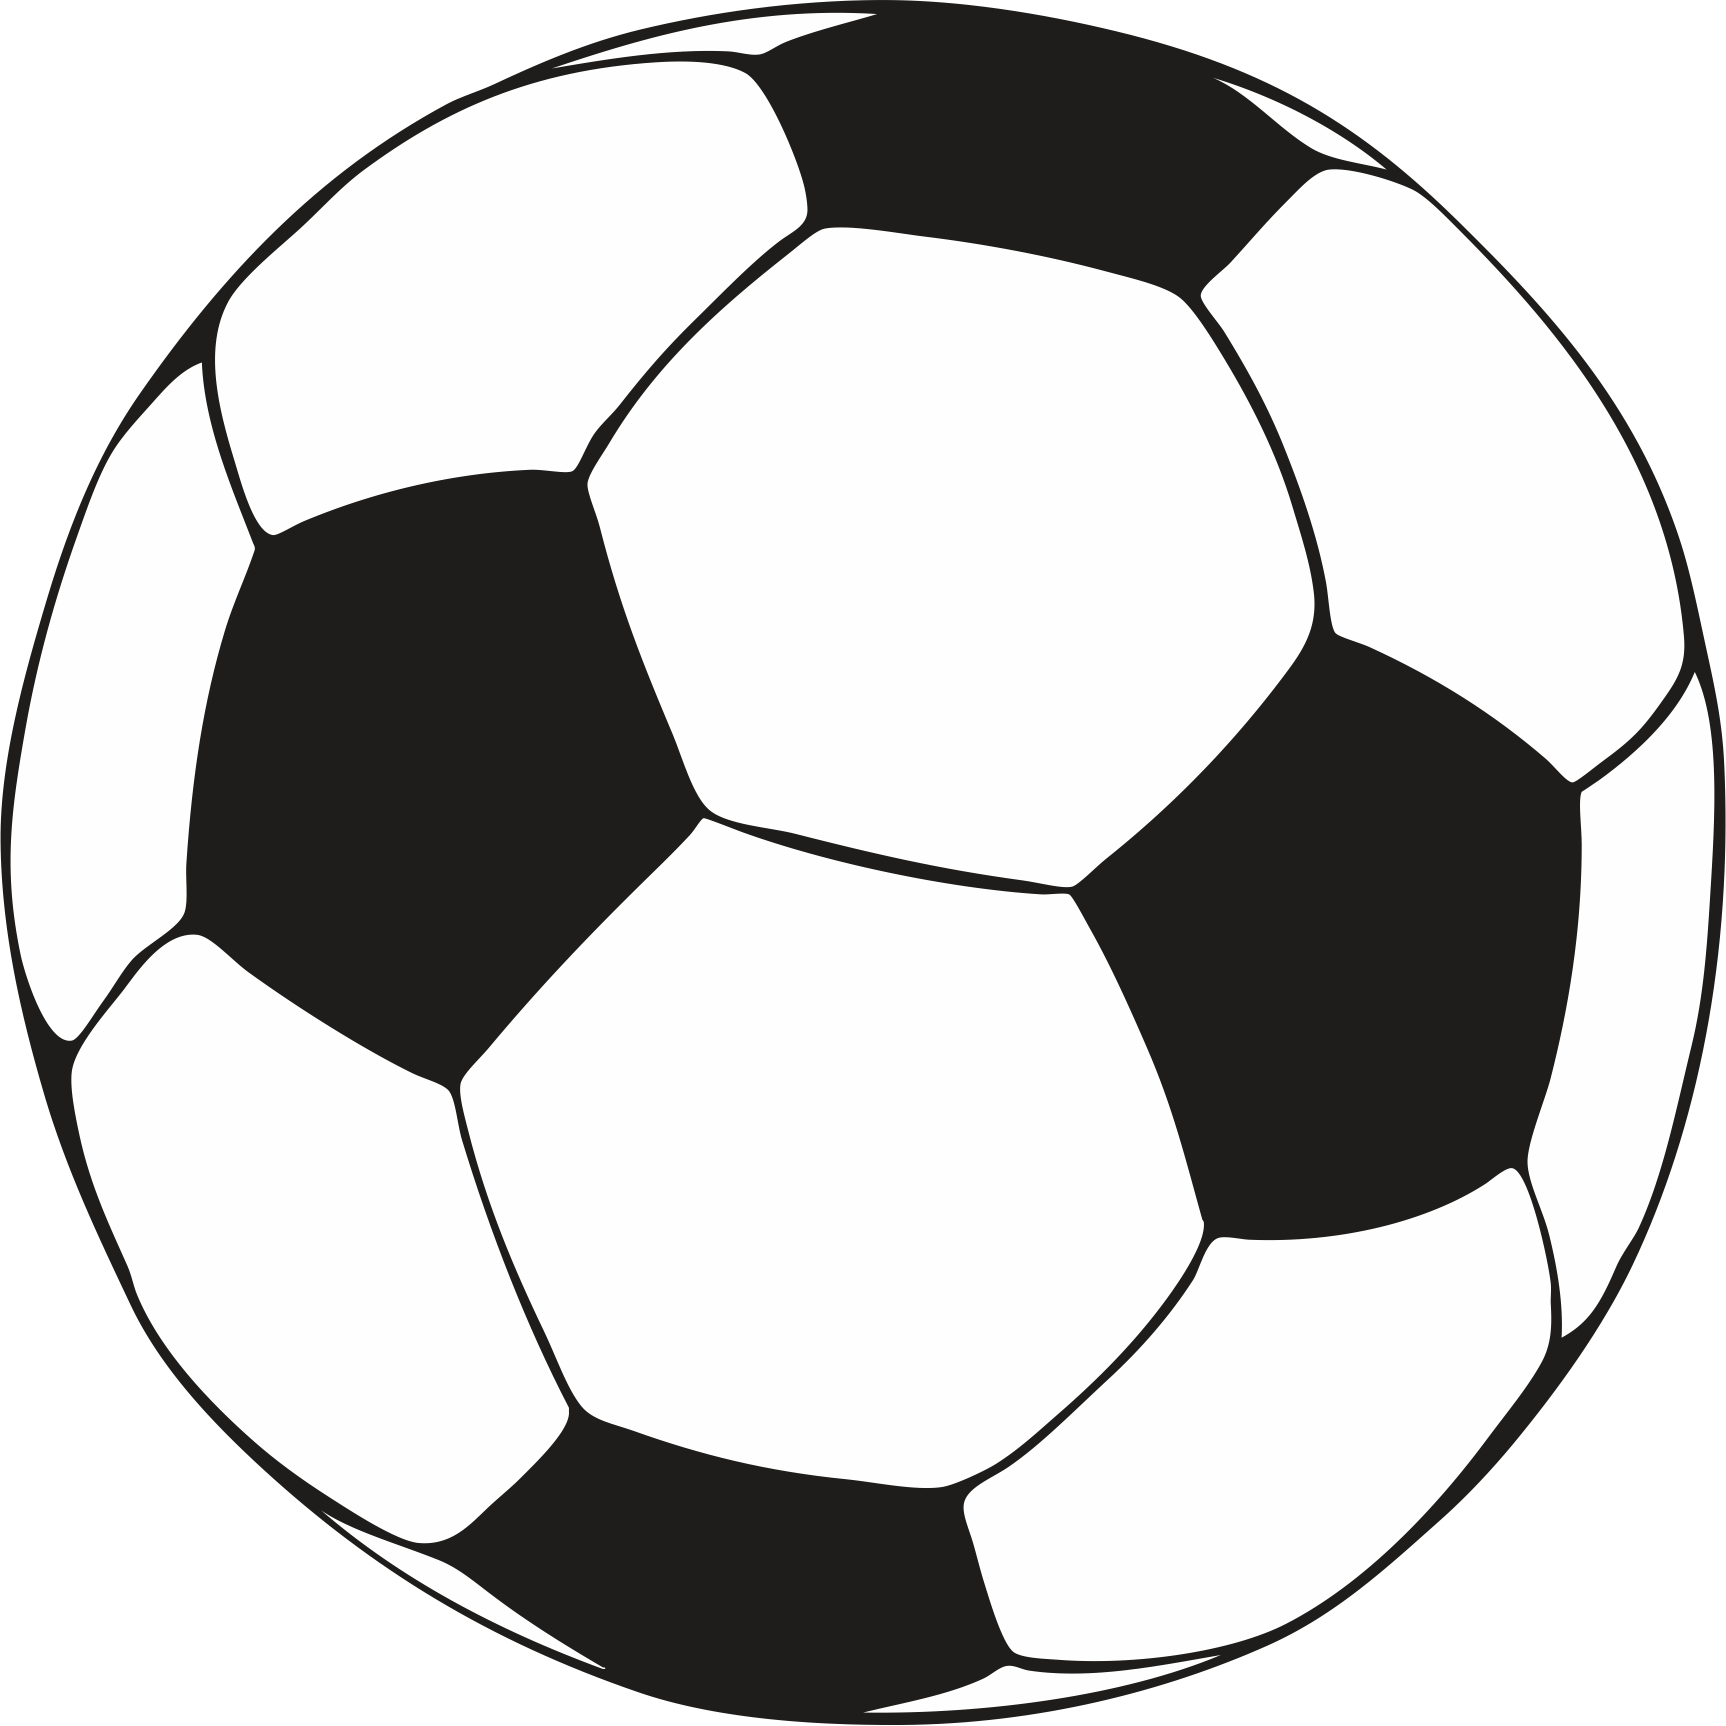 Soccer ball football ball images clipart clipartcow.